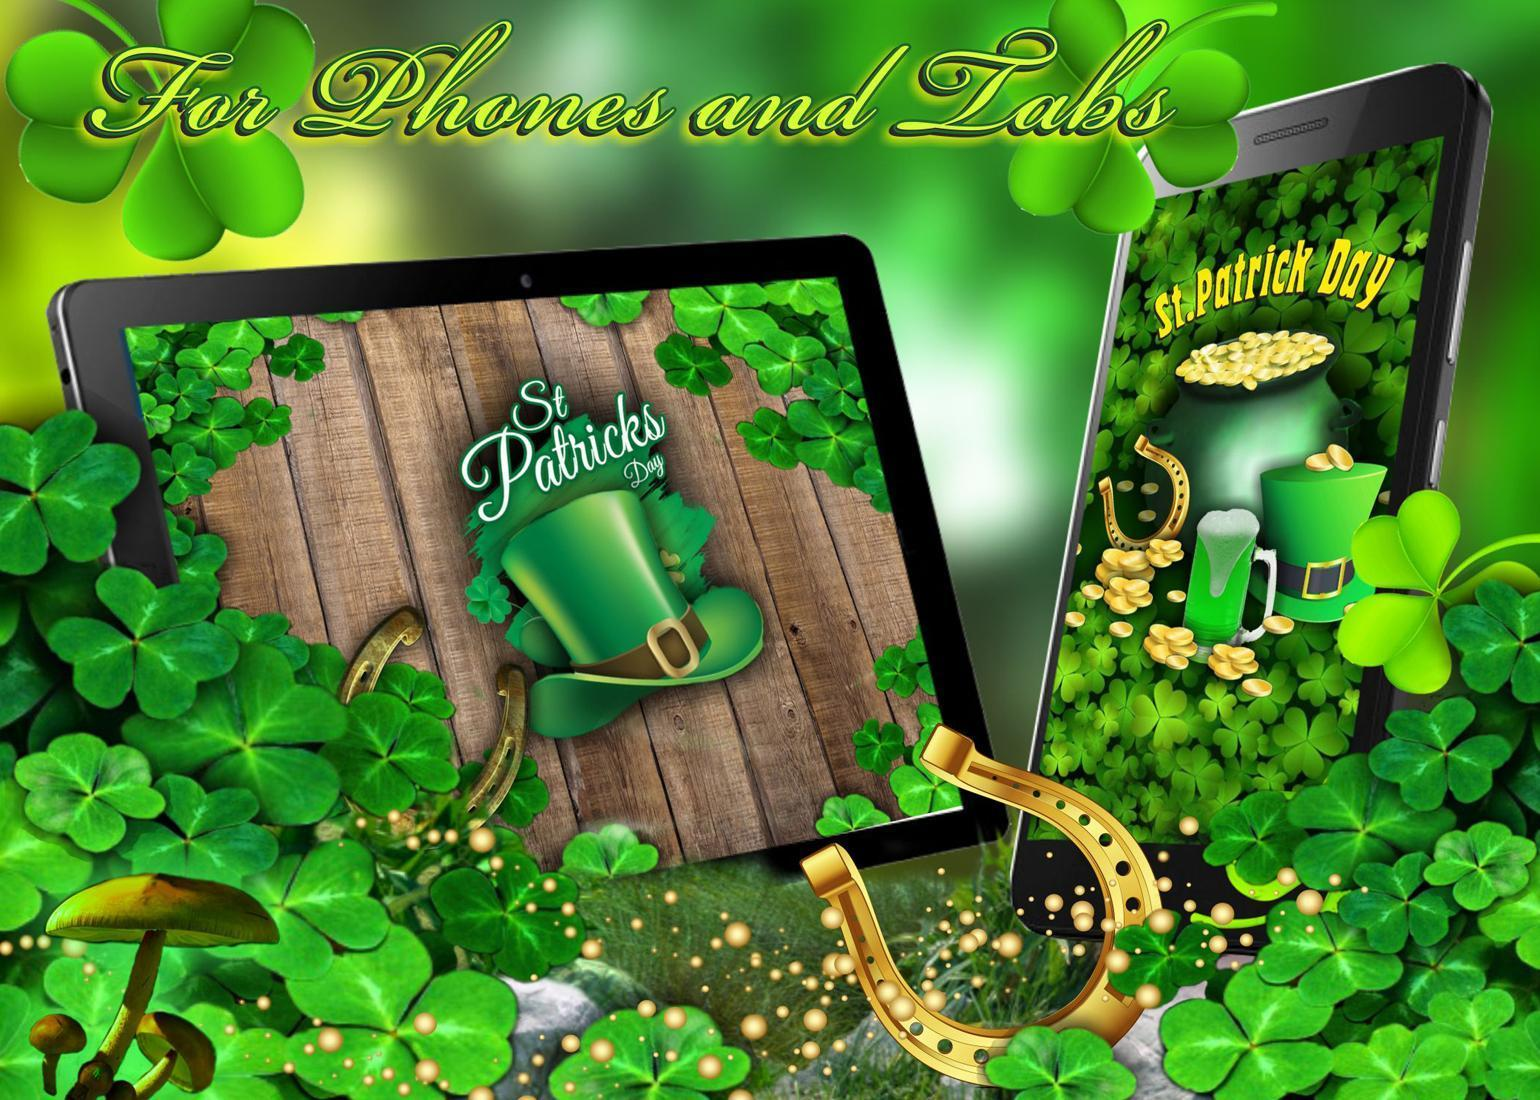 Stpatrick Day Live Wallpaper For Android Apk Download